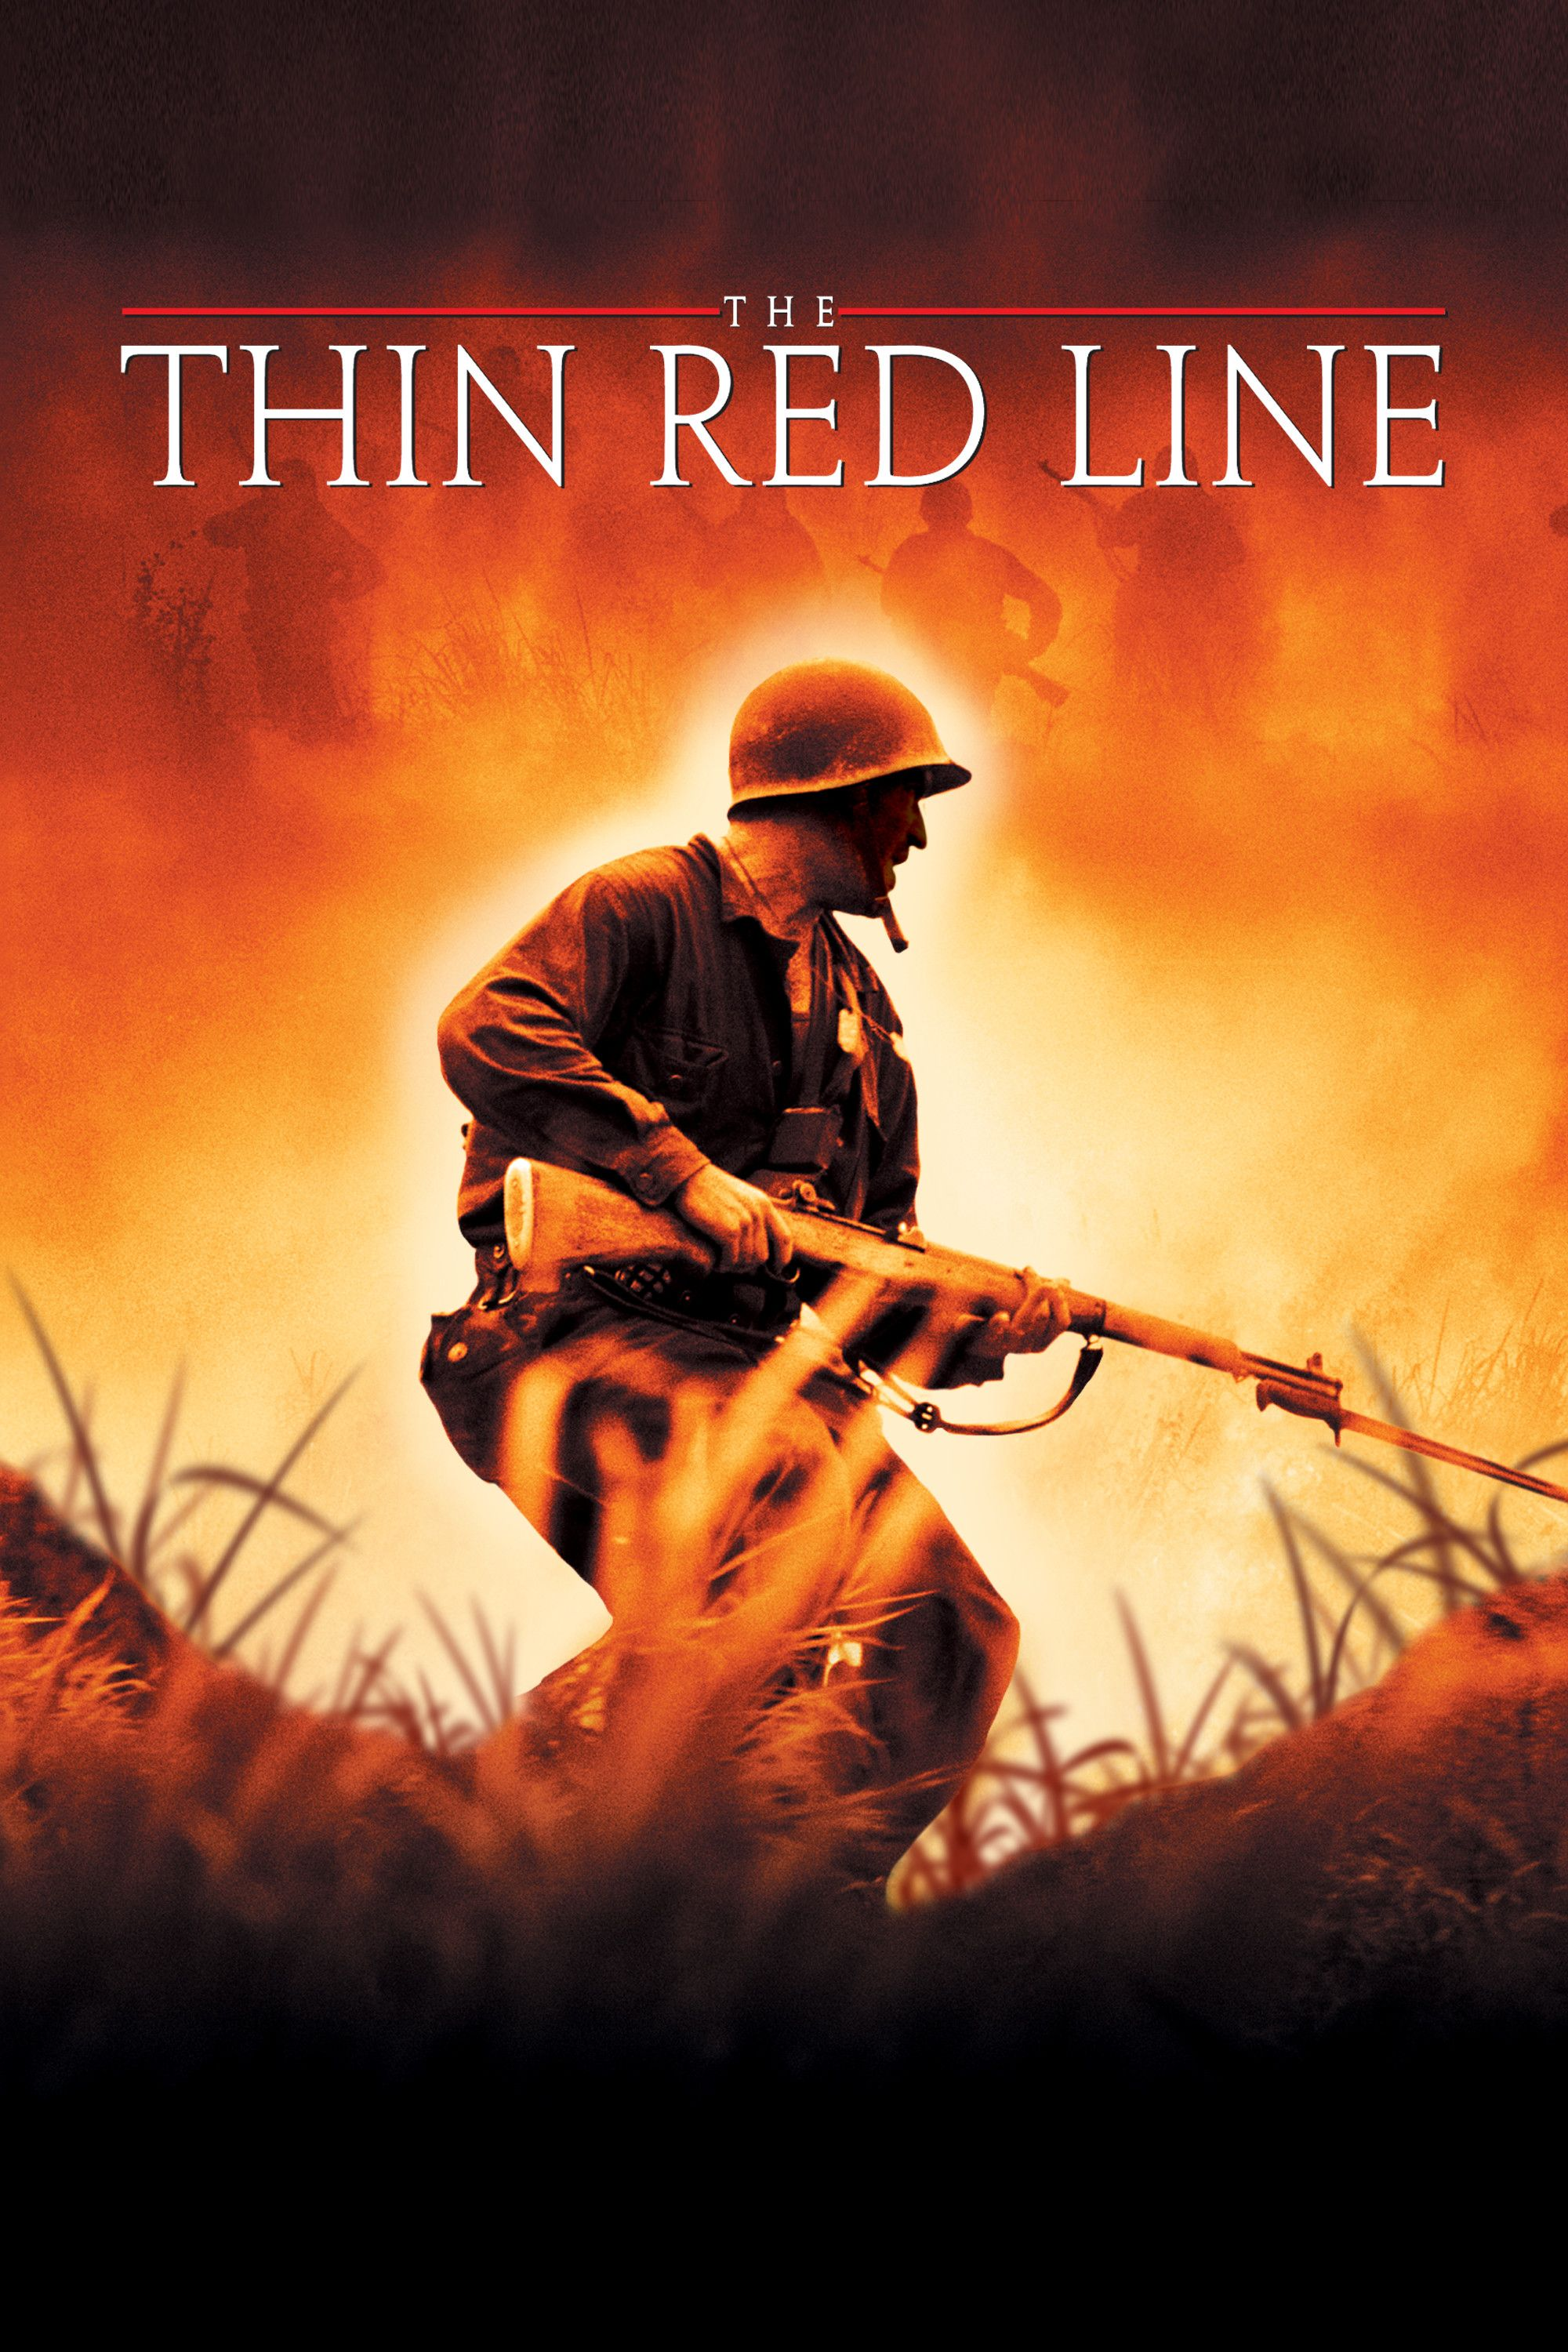 The Thin Red Line Movie Poster Sean Penn Adrien Brody James - Popular movie posters get redesigned with a beautifully minimal twist